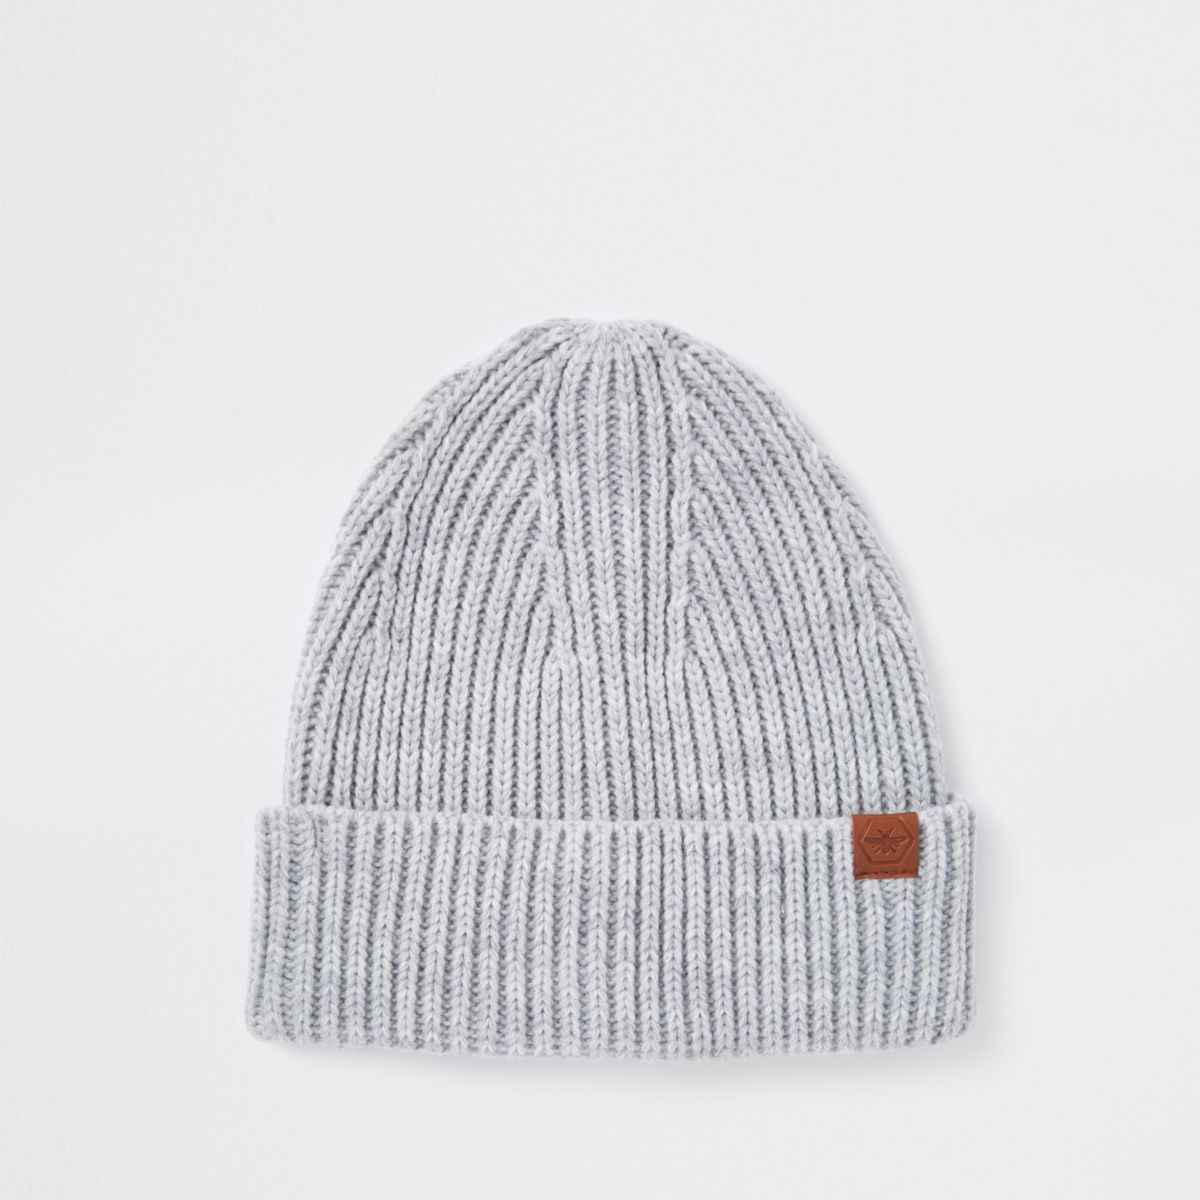 Grey fisherman beanie hat